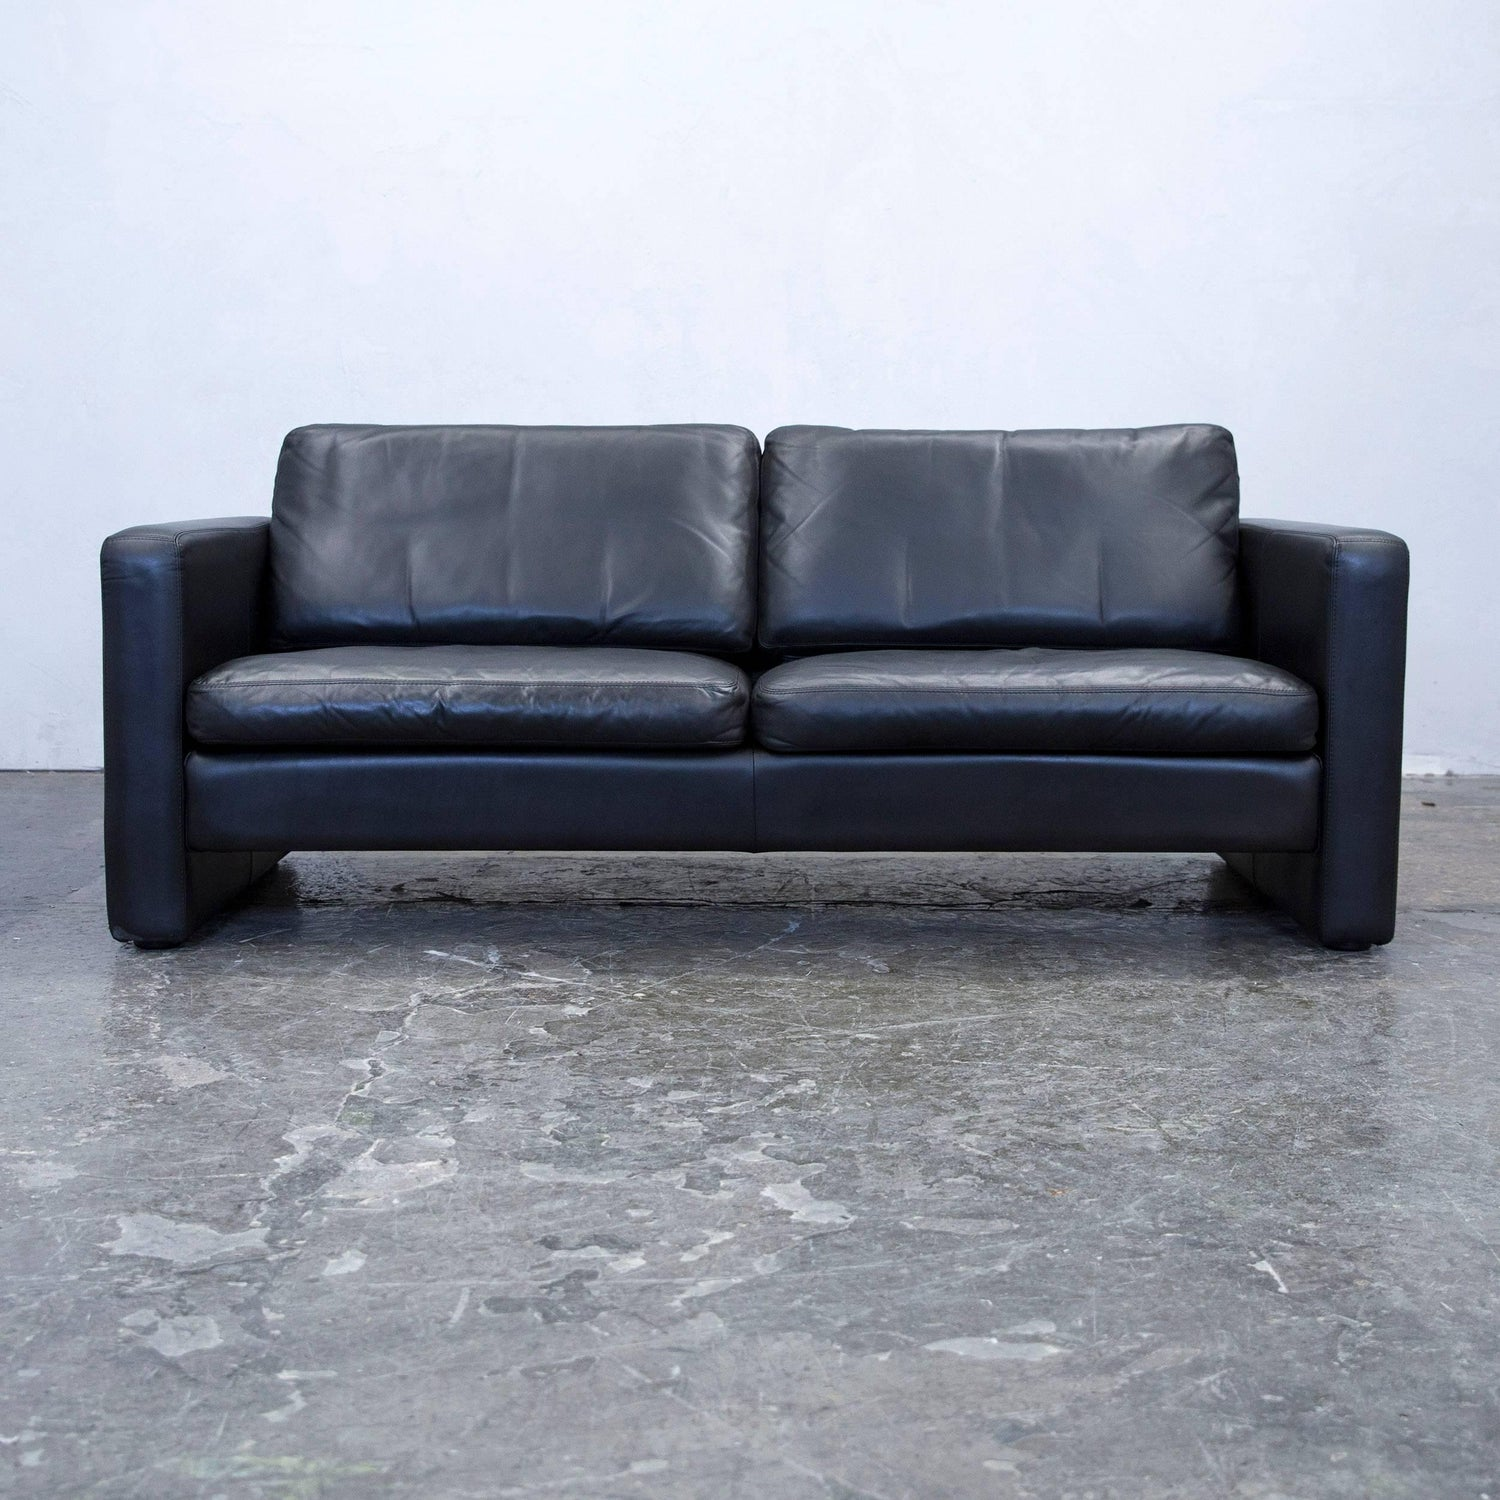 Cor sofa gebraucht kaufen okaycreations cor designer sofa leather black twoseater couch modern for at parisarafo Images